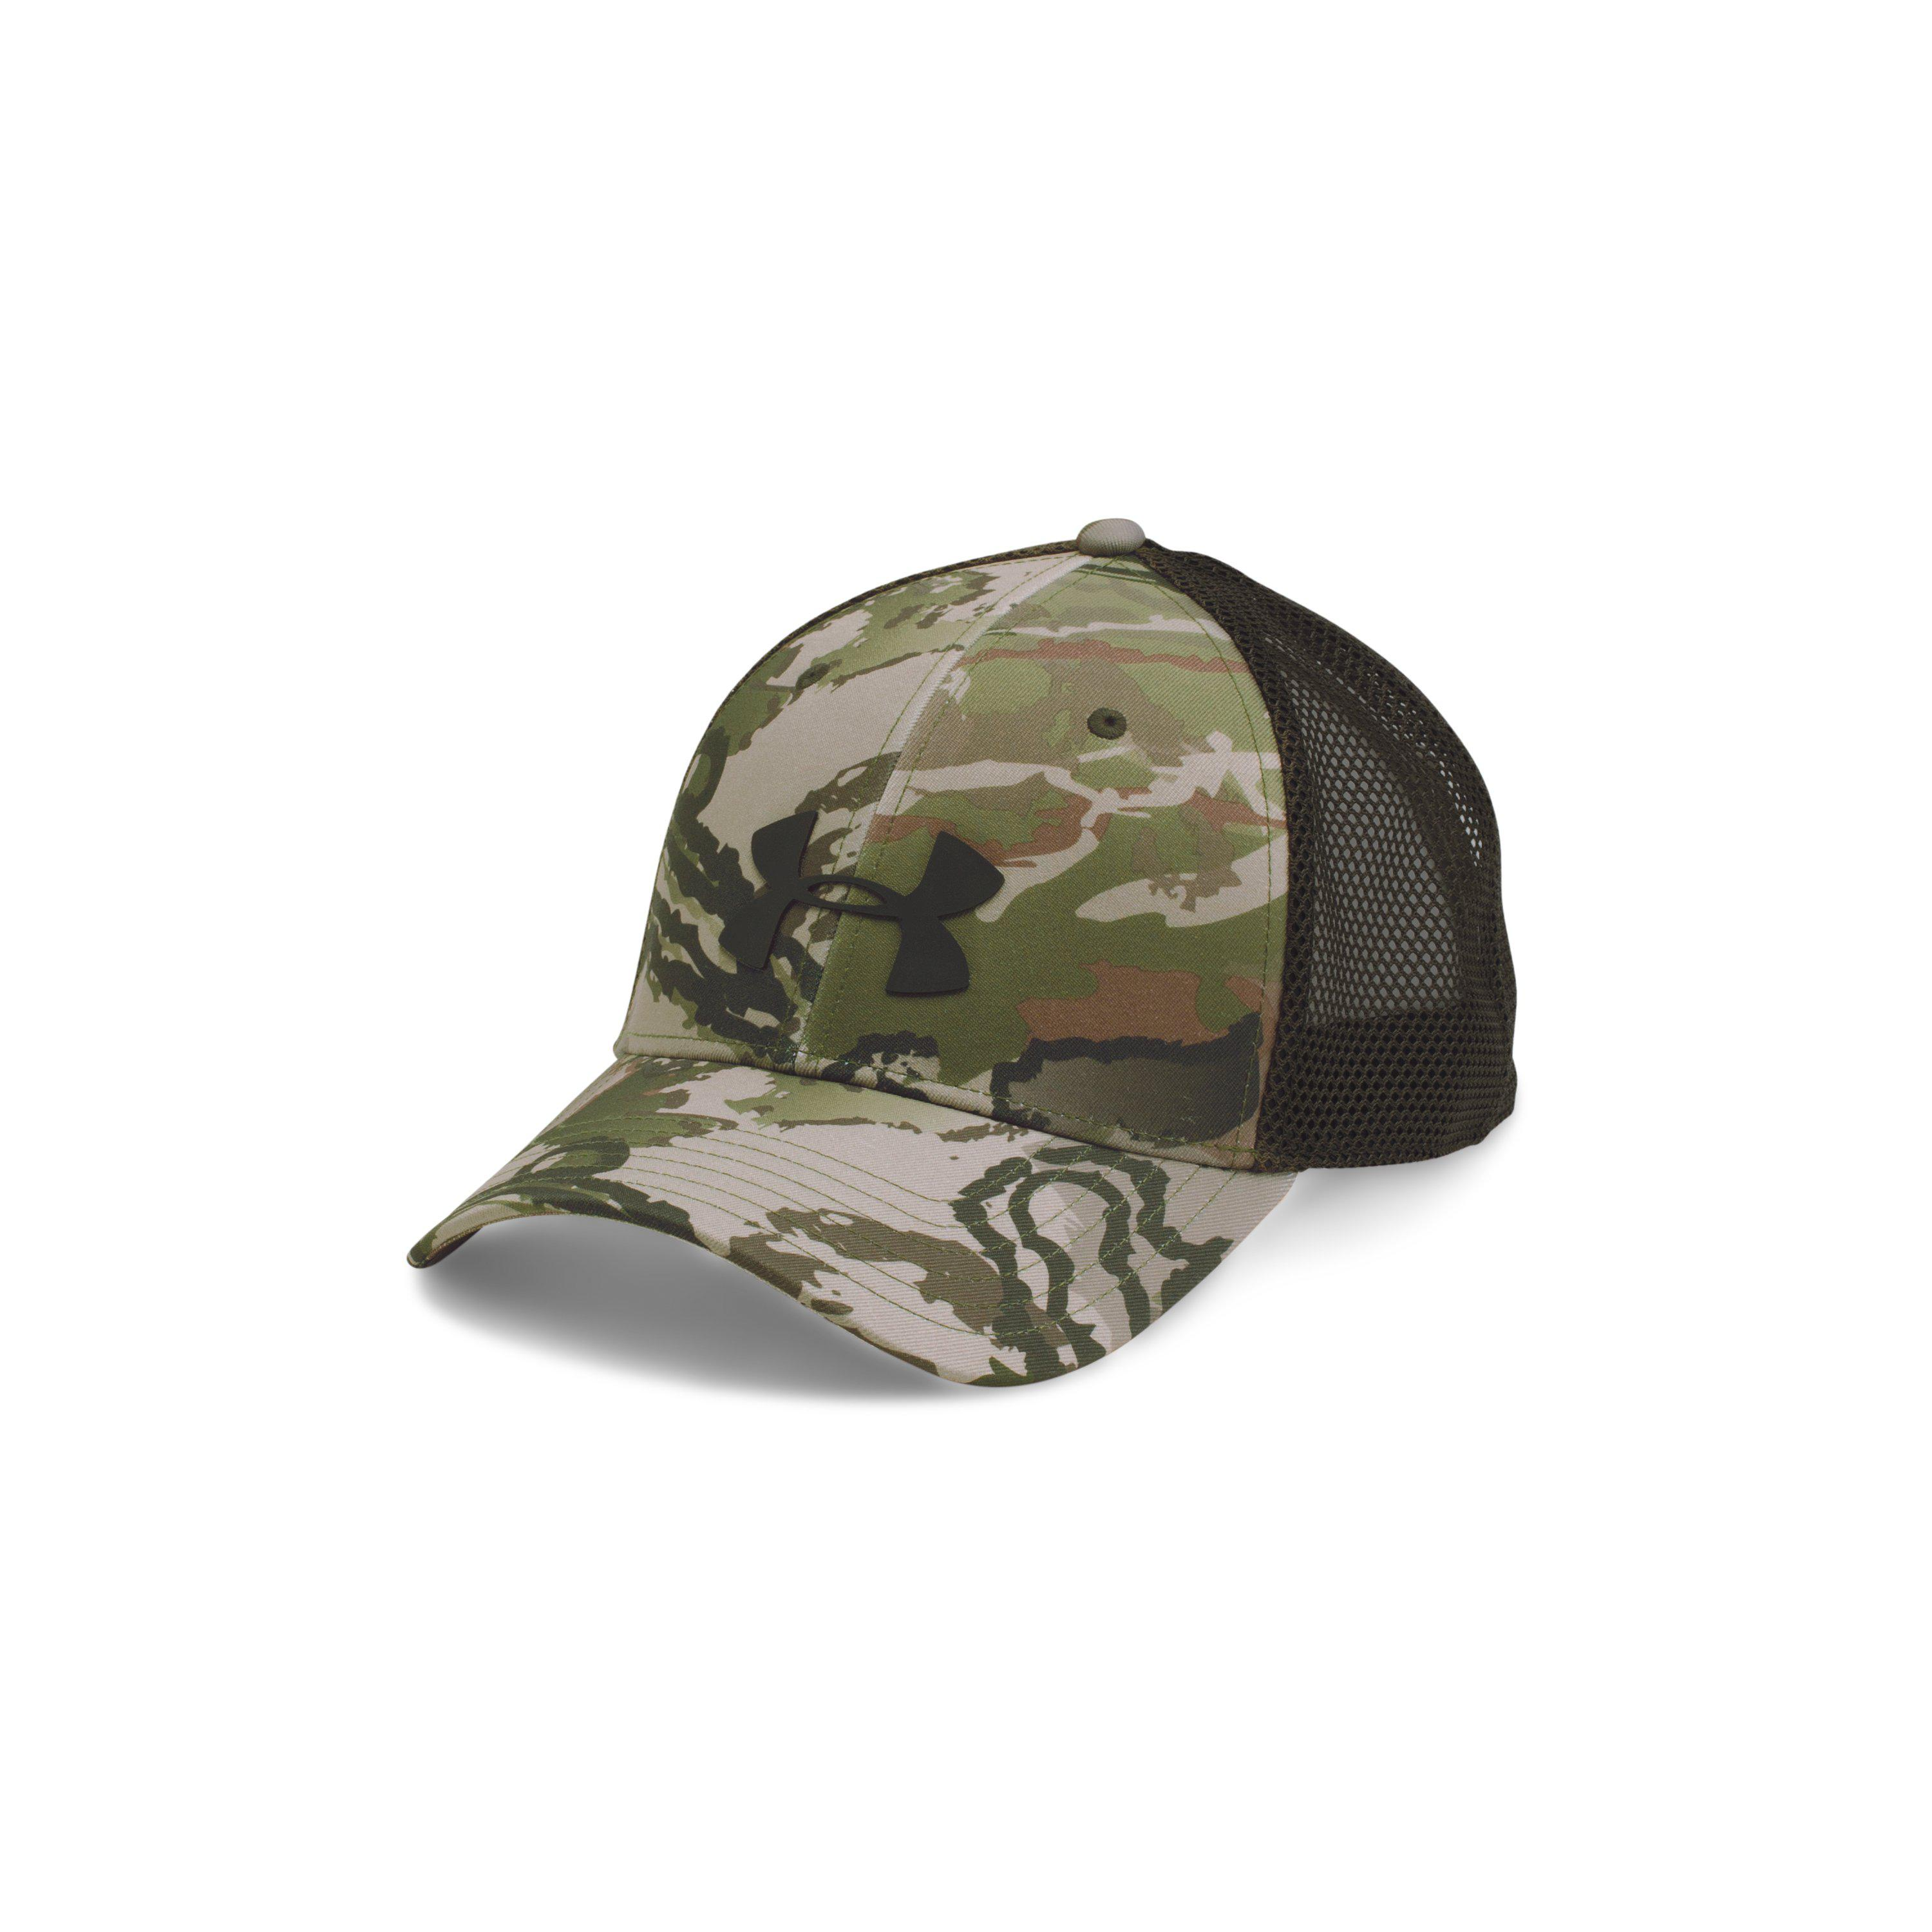 705b685ad8a Lyst - Under Armour Men s Ua Camo Mesh 2.0 Cap in Green for Men